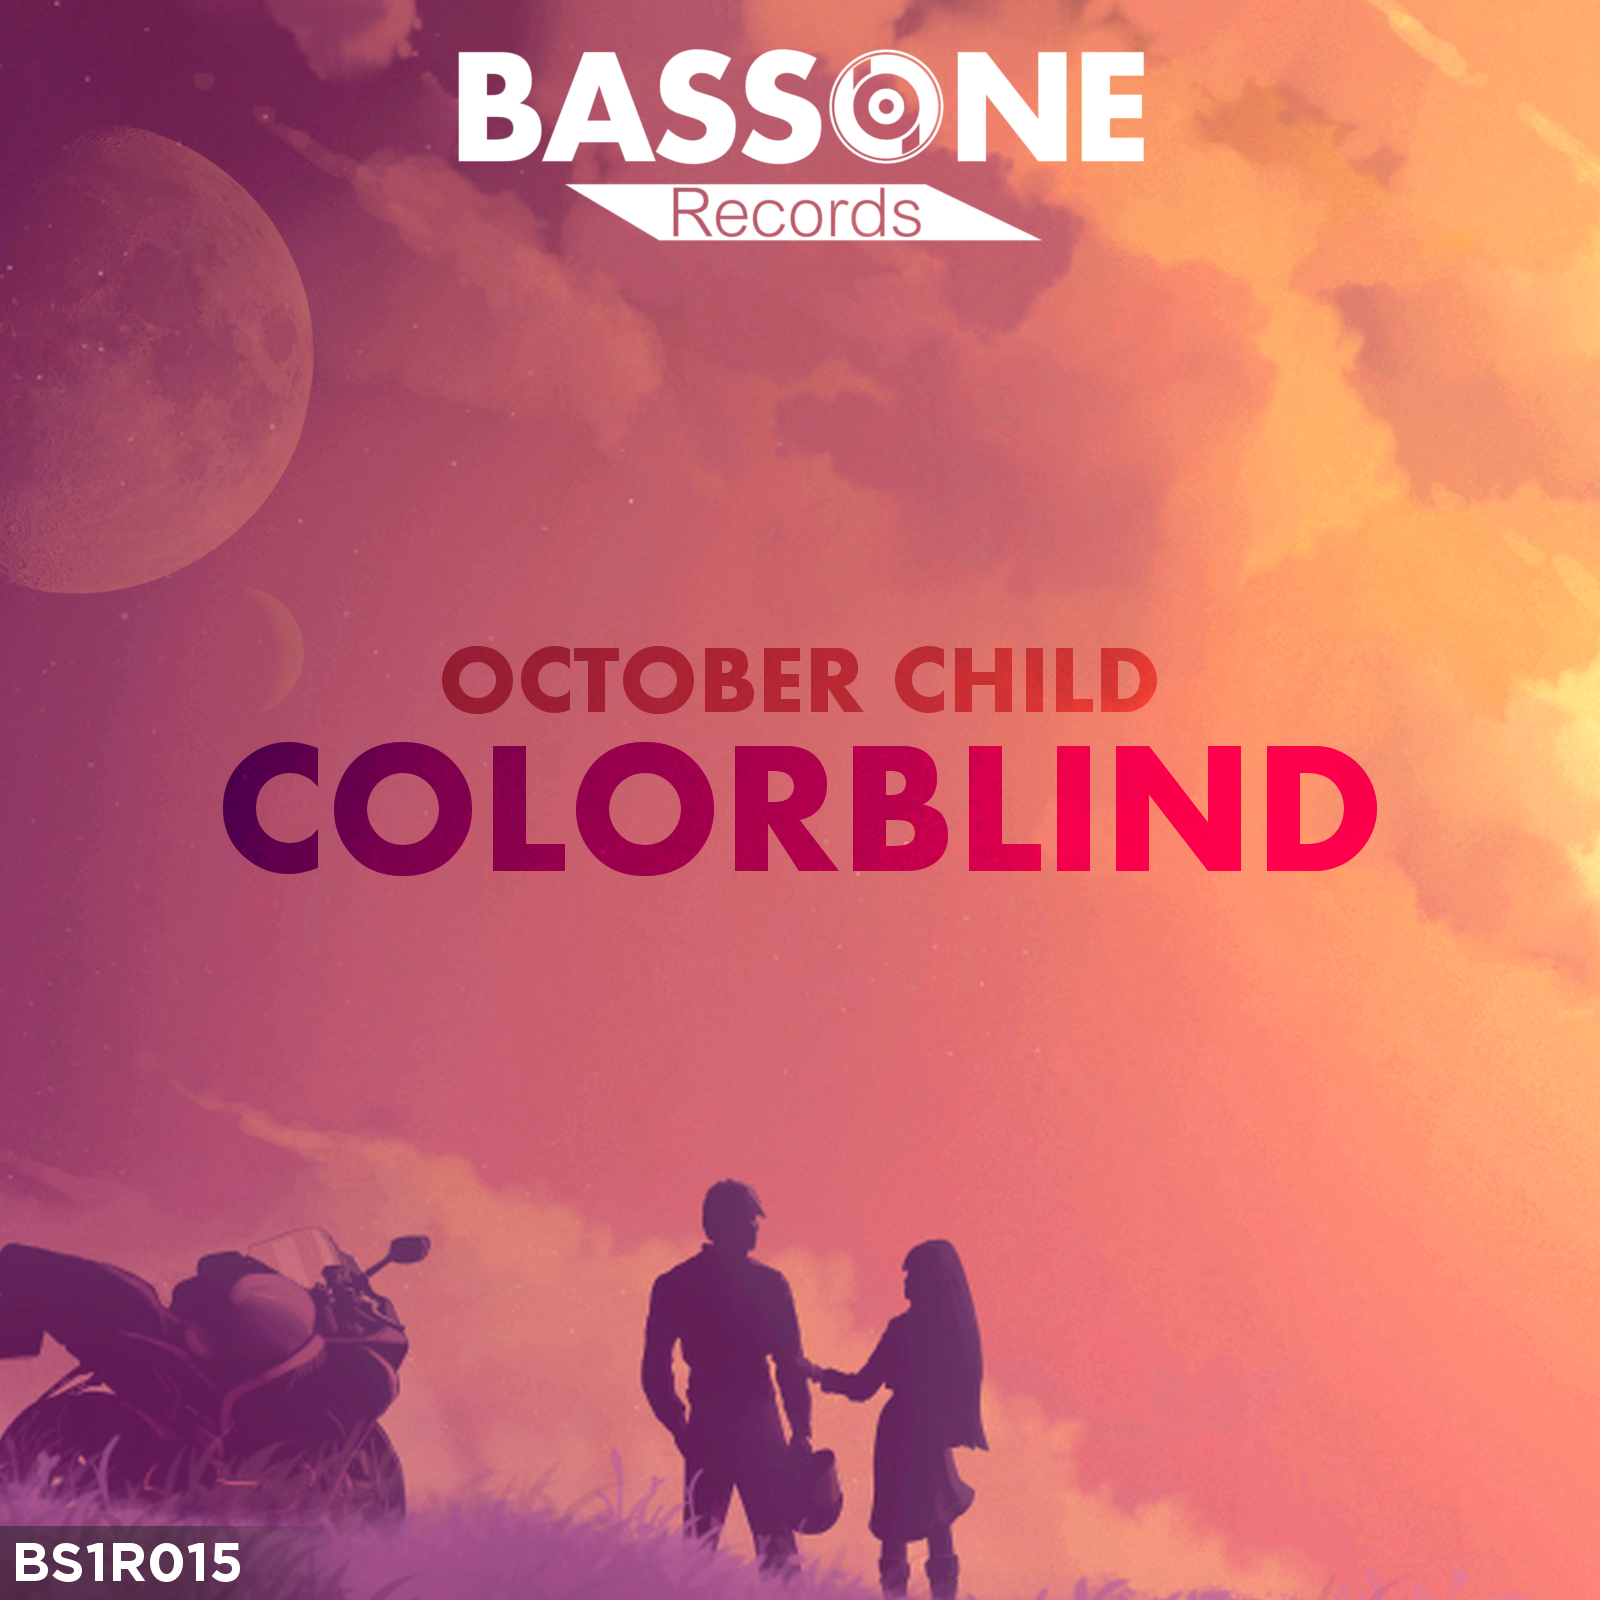 October Child Colorblind